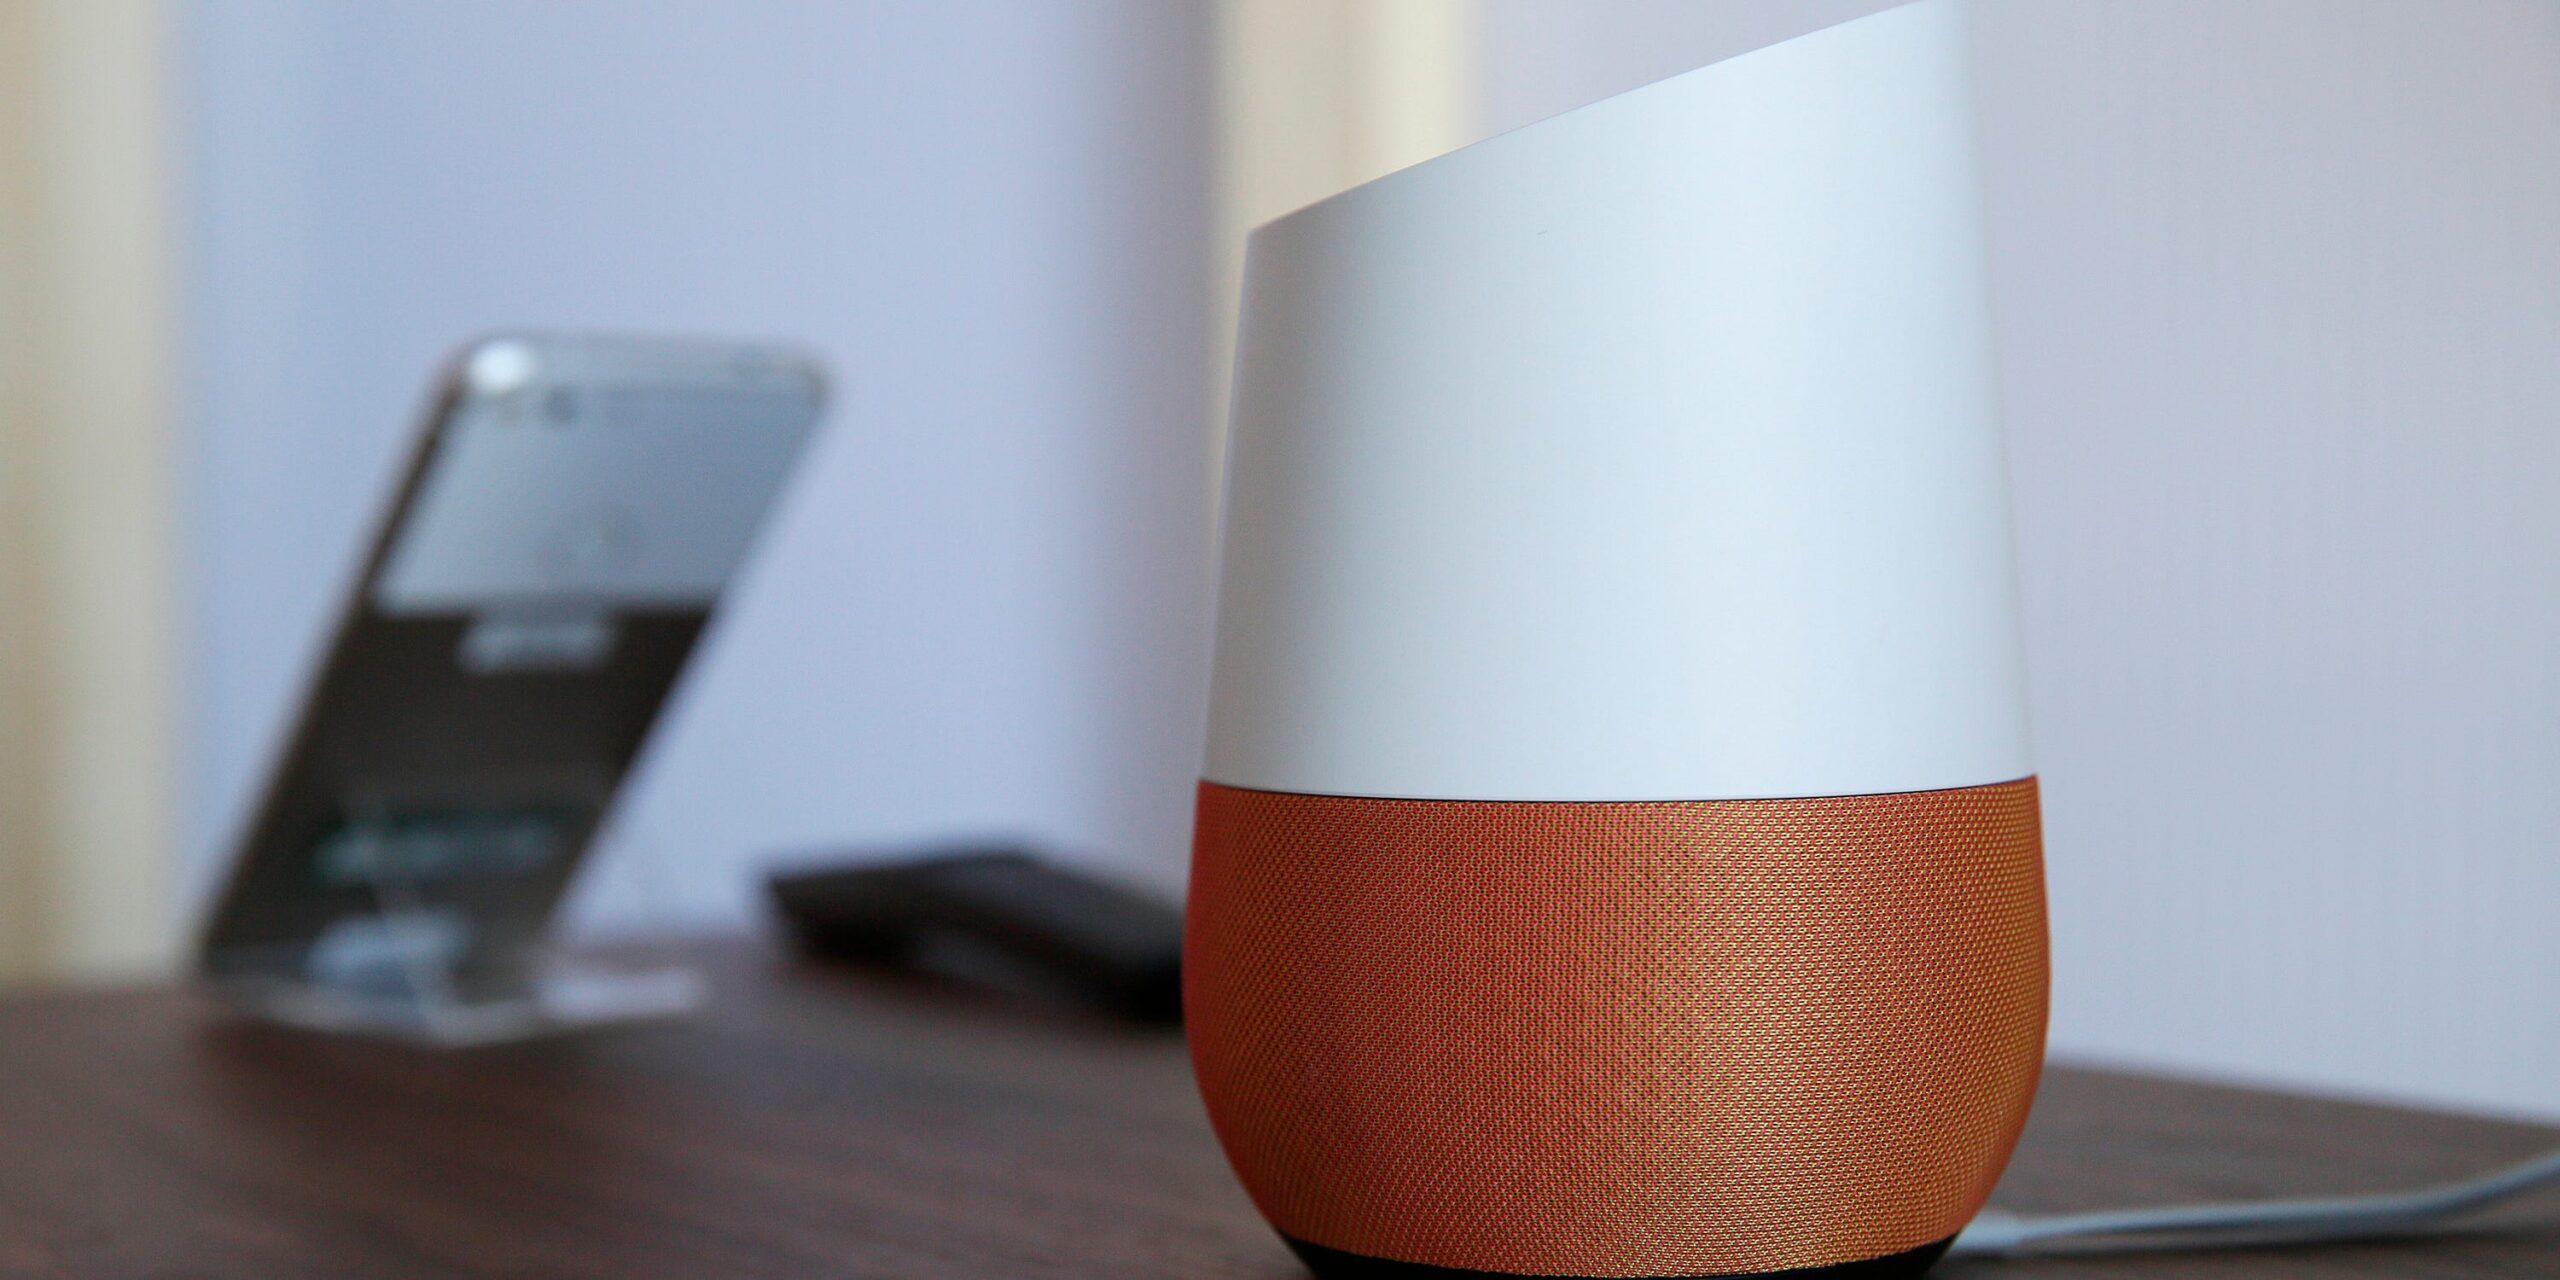 Google infringed on five patents, a judge says, marking a legal win for Sonos